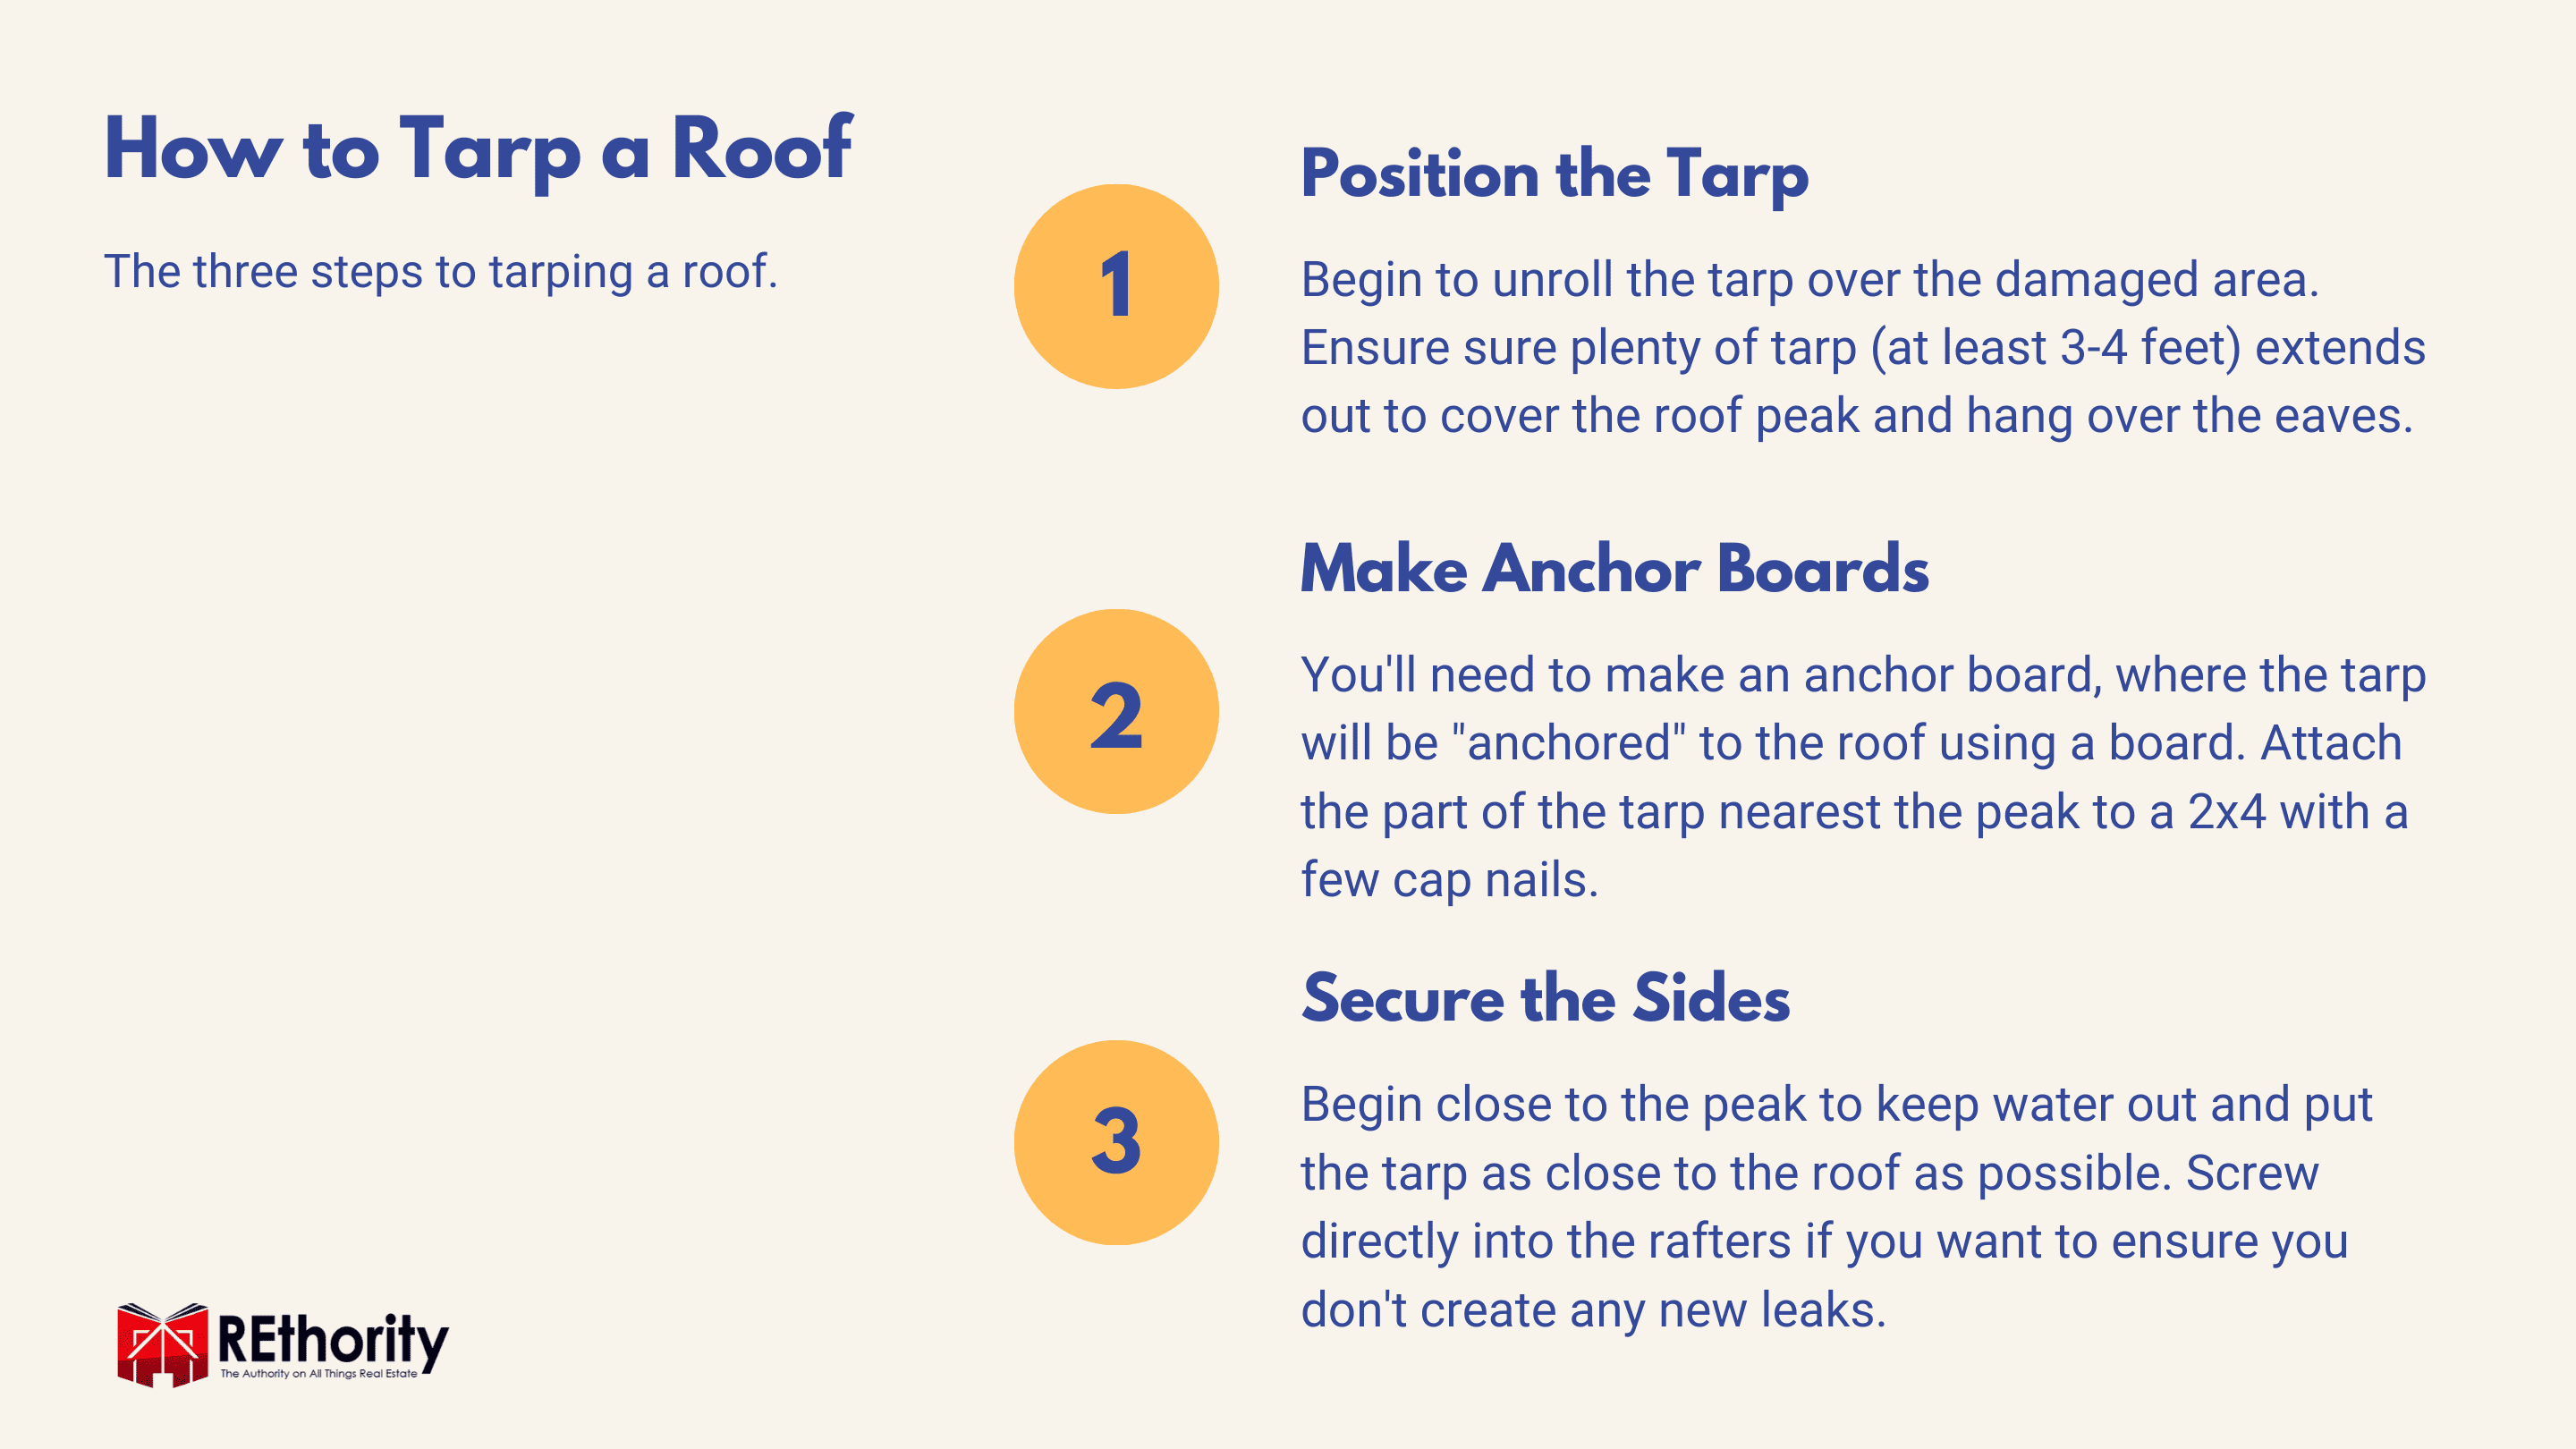 How to Tarp a Roof graphic with the three steps you need to take (1)